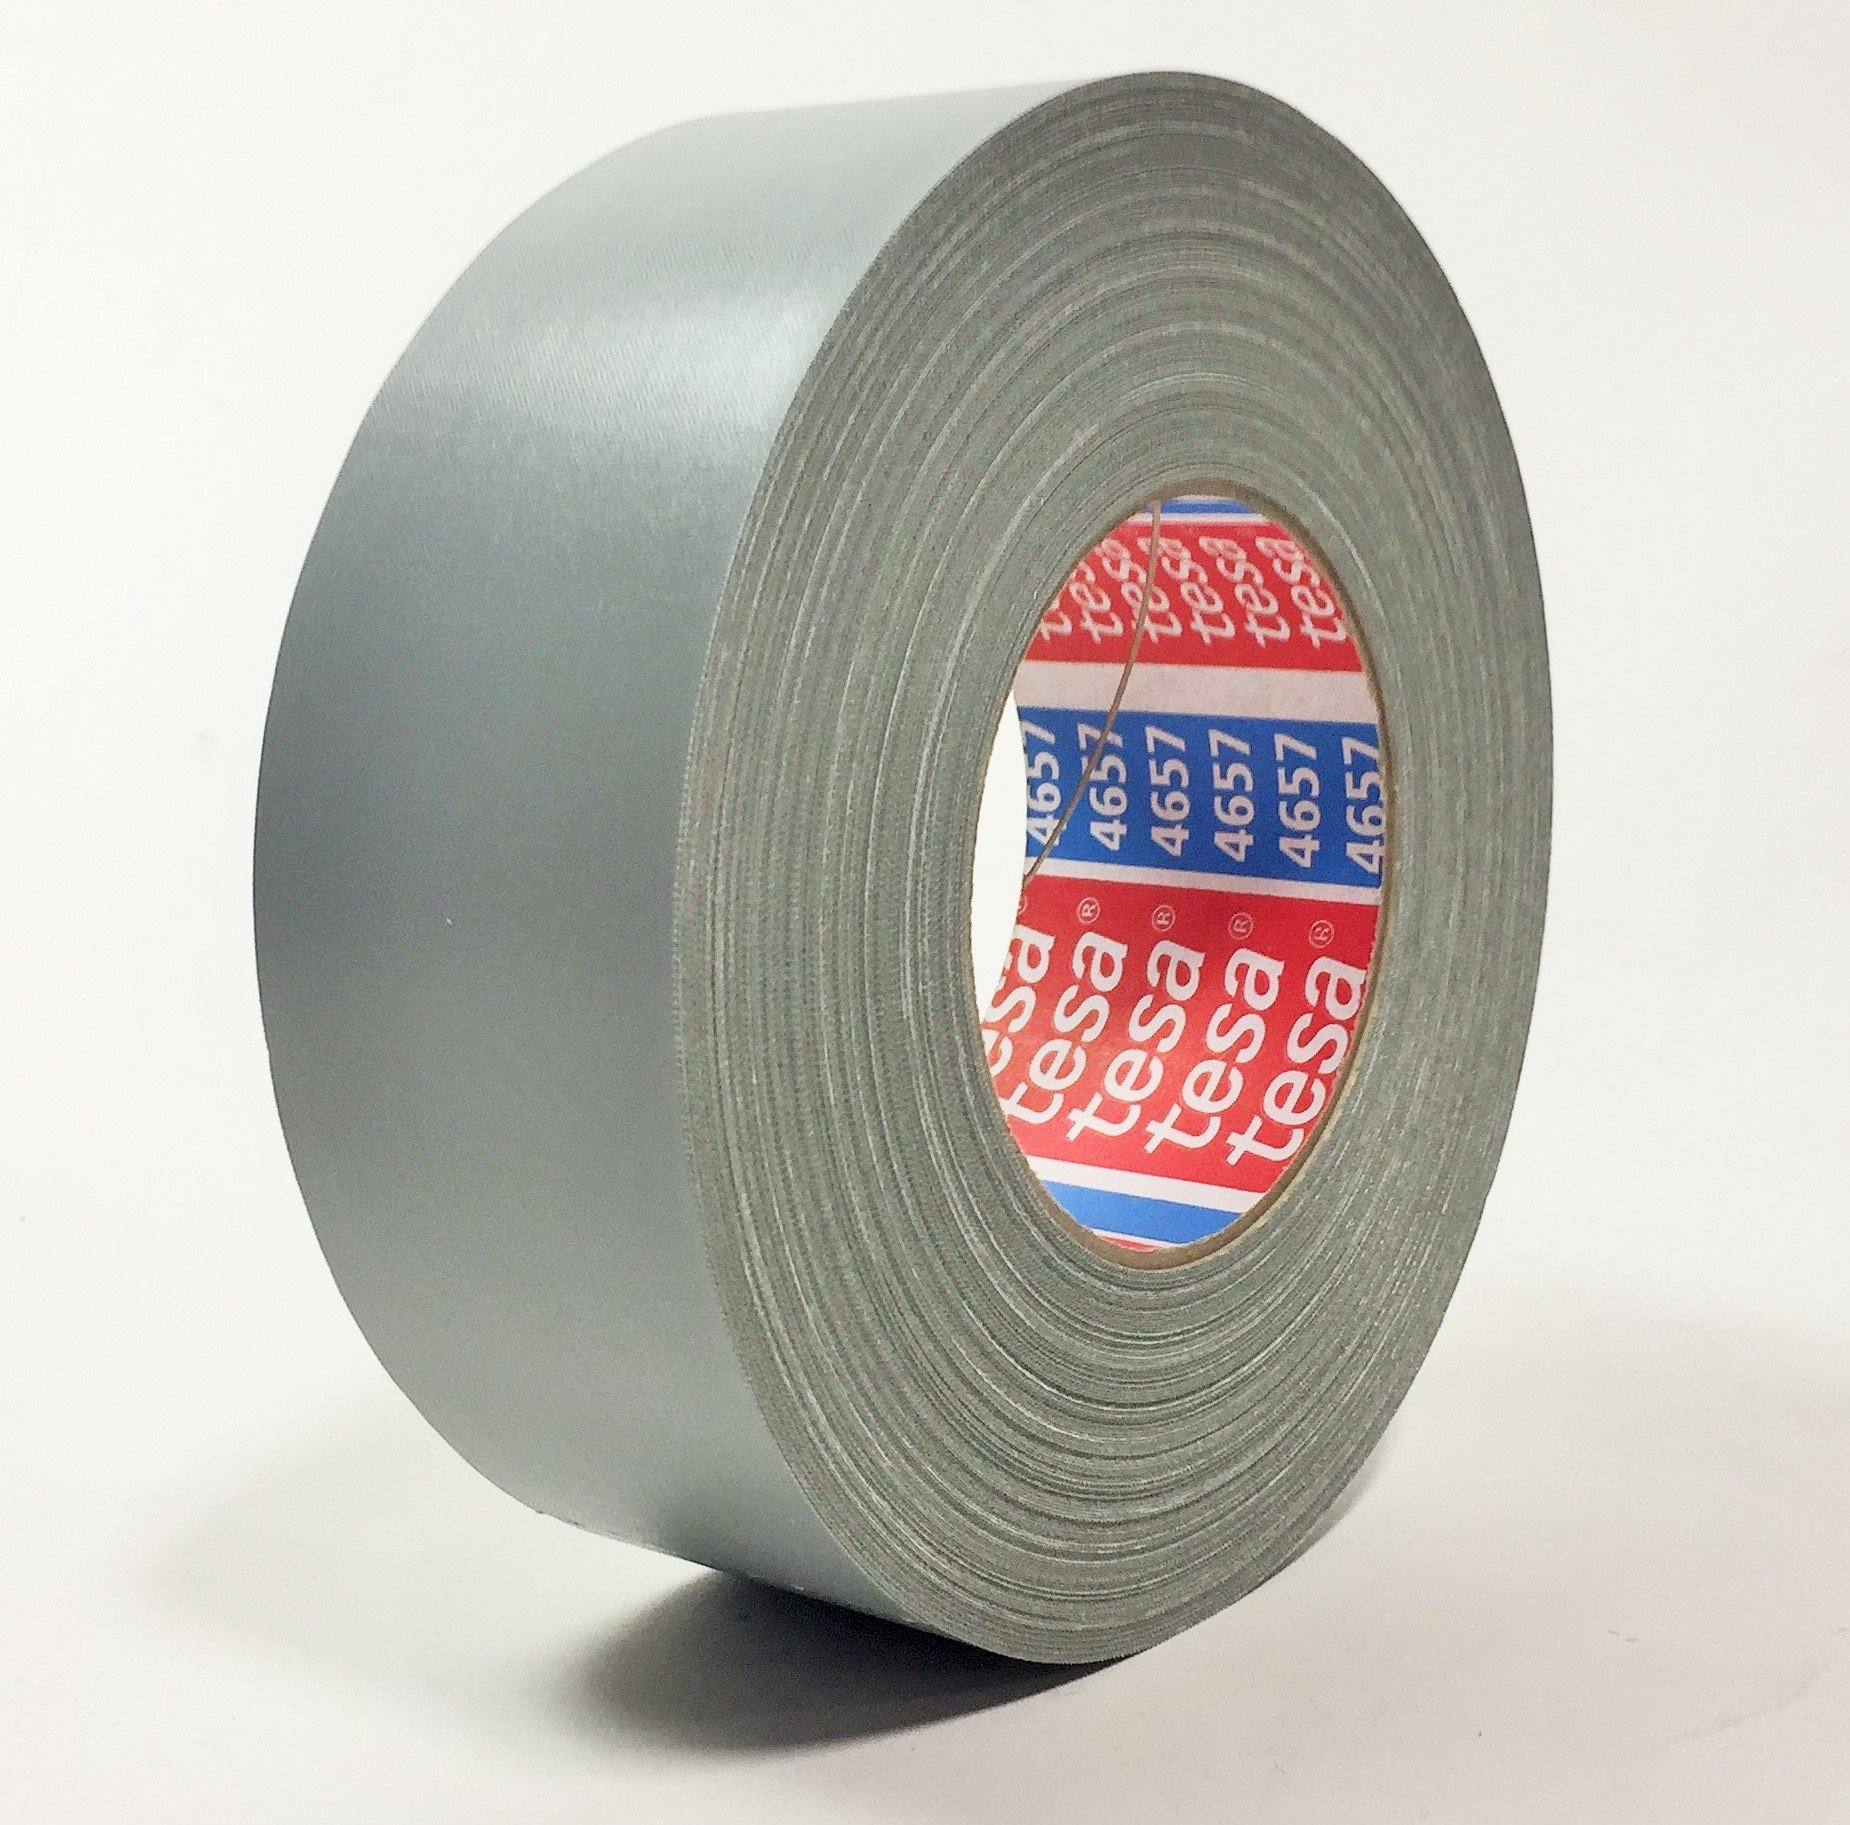 Tesa 4657 Temperature Resistant, Acrylic Coated, Cloth Tape - 1 Roll - 2 inch X 55YD